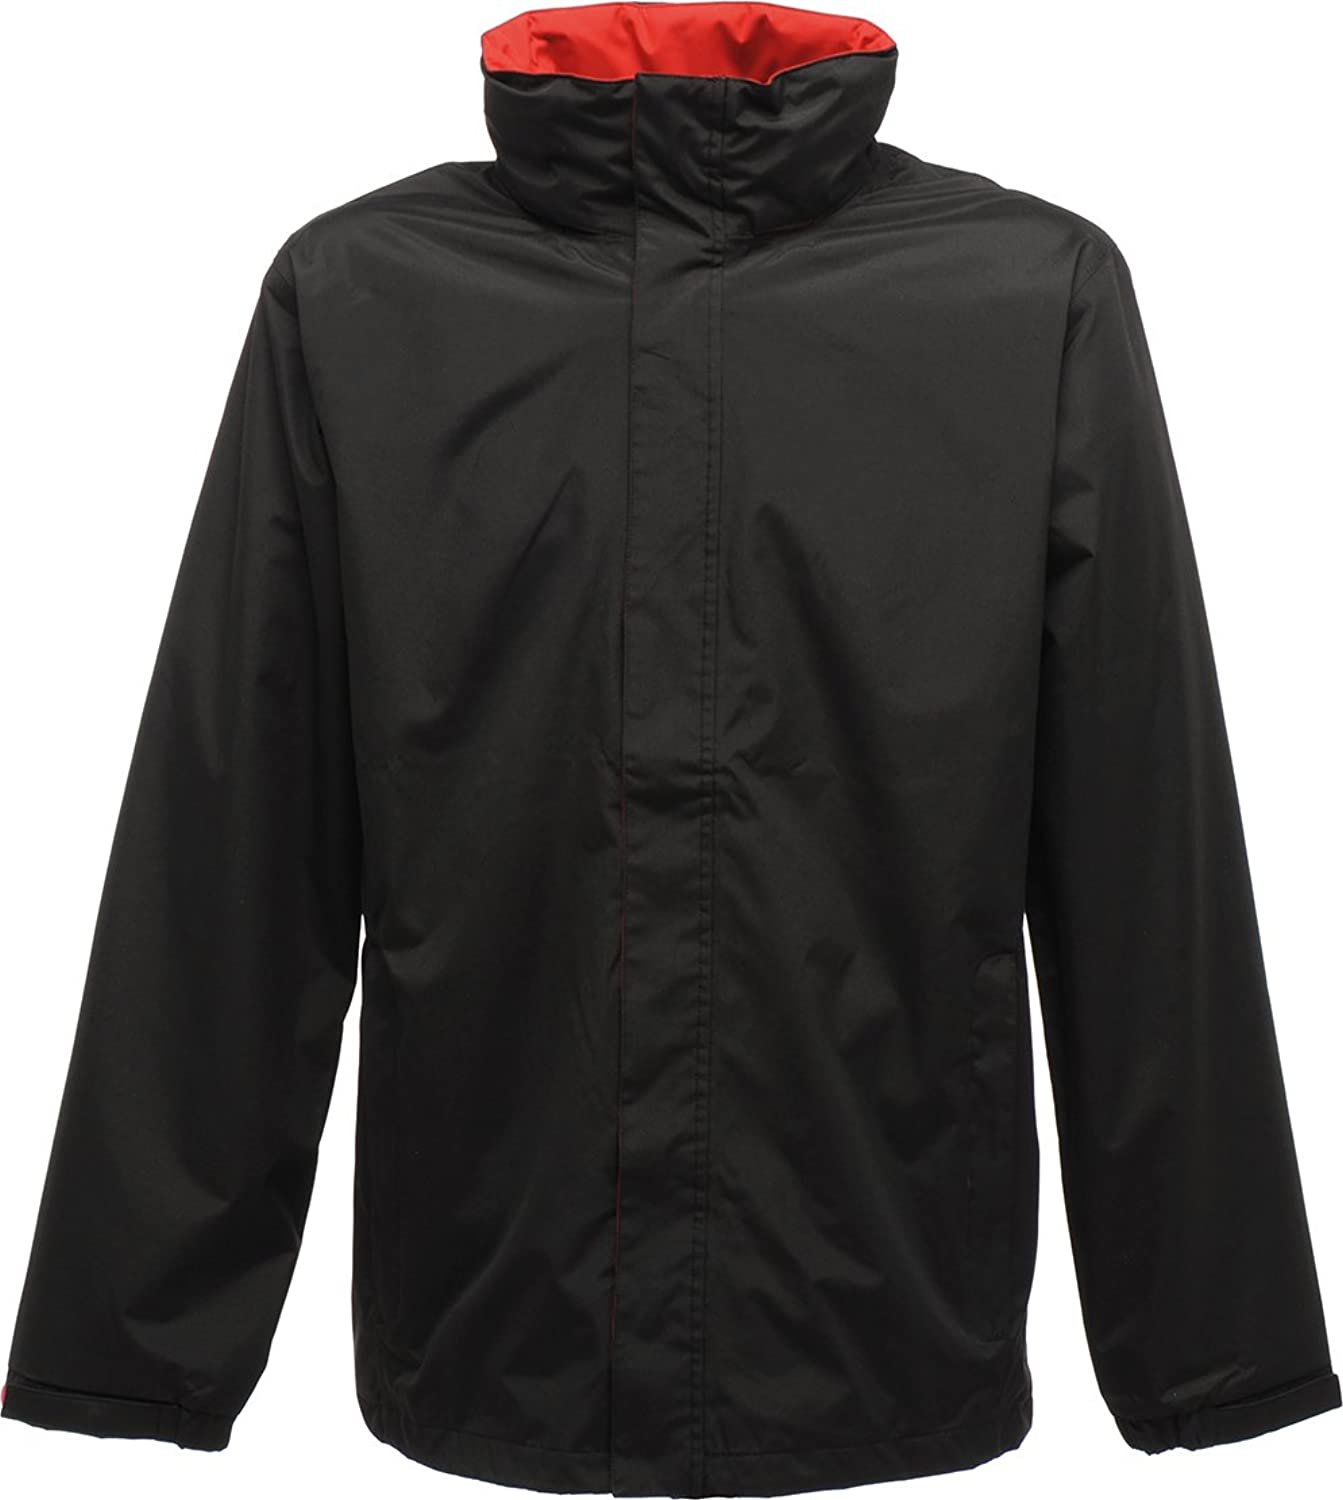 Regatta Dover Jacket - Black-ash - S